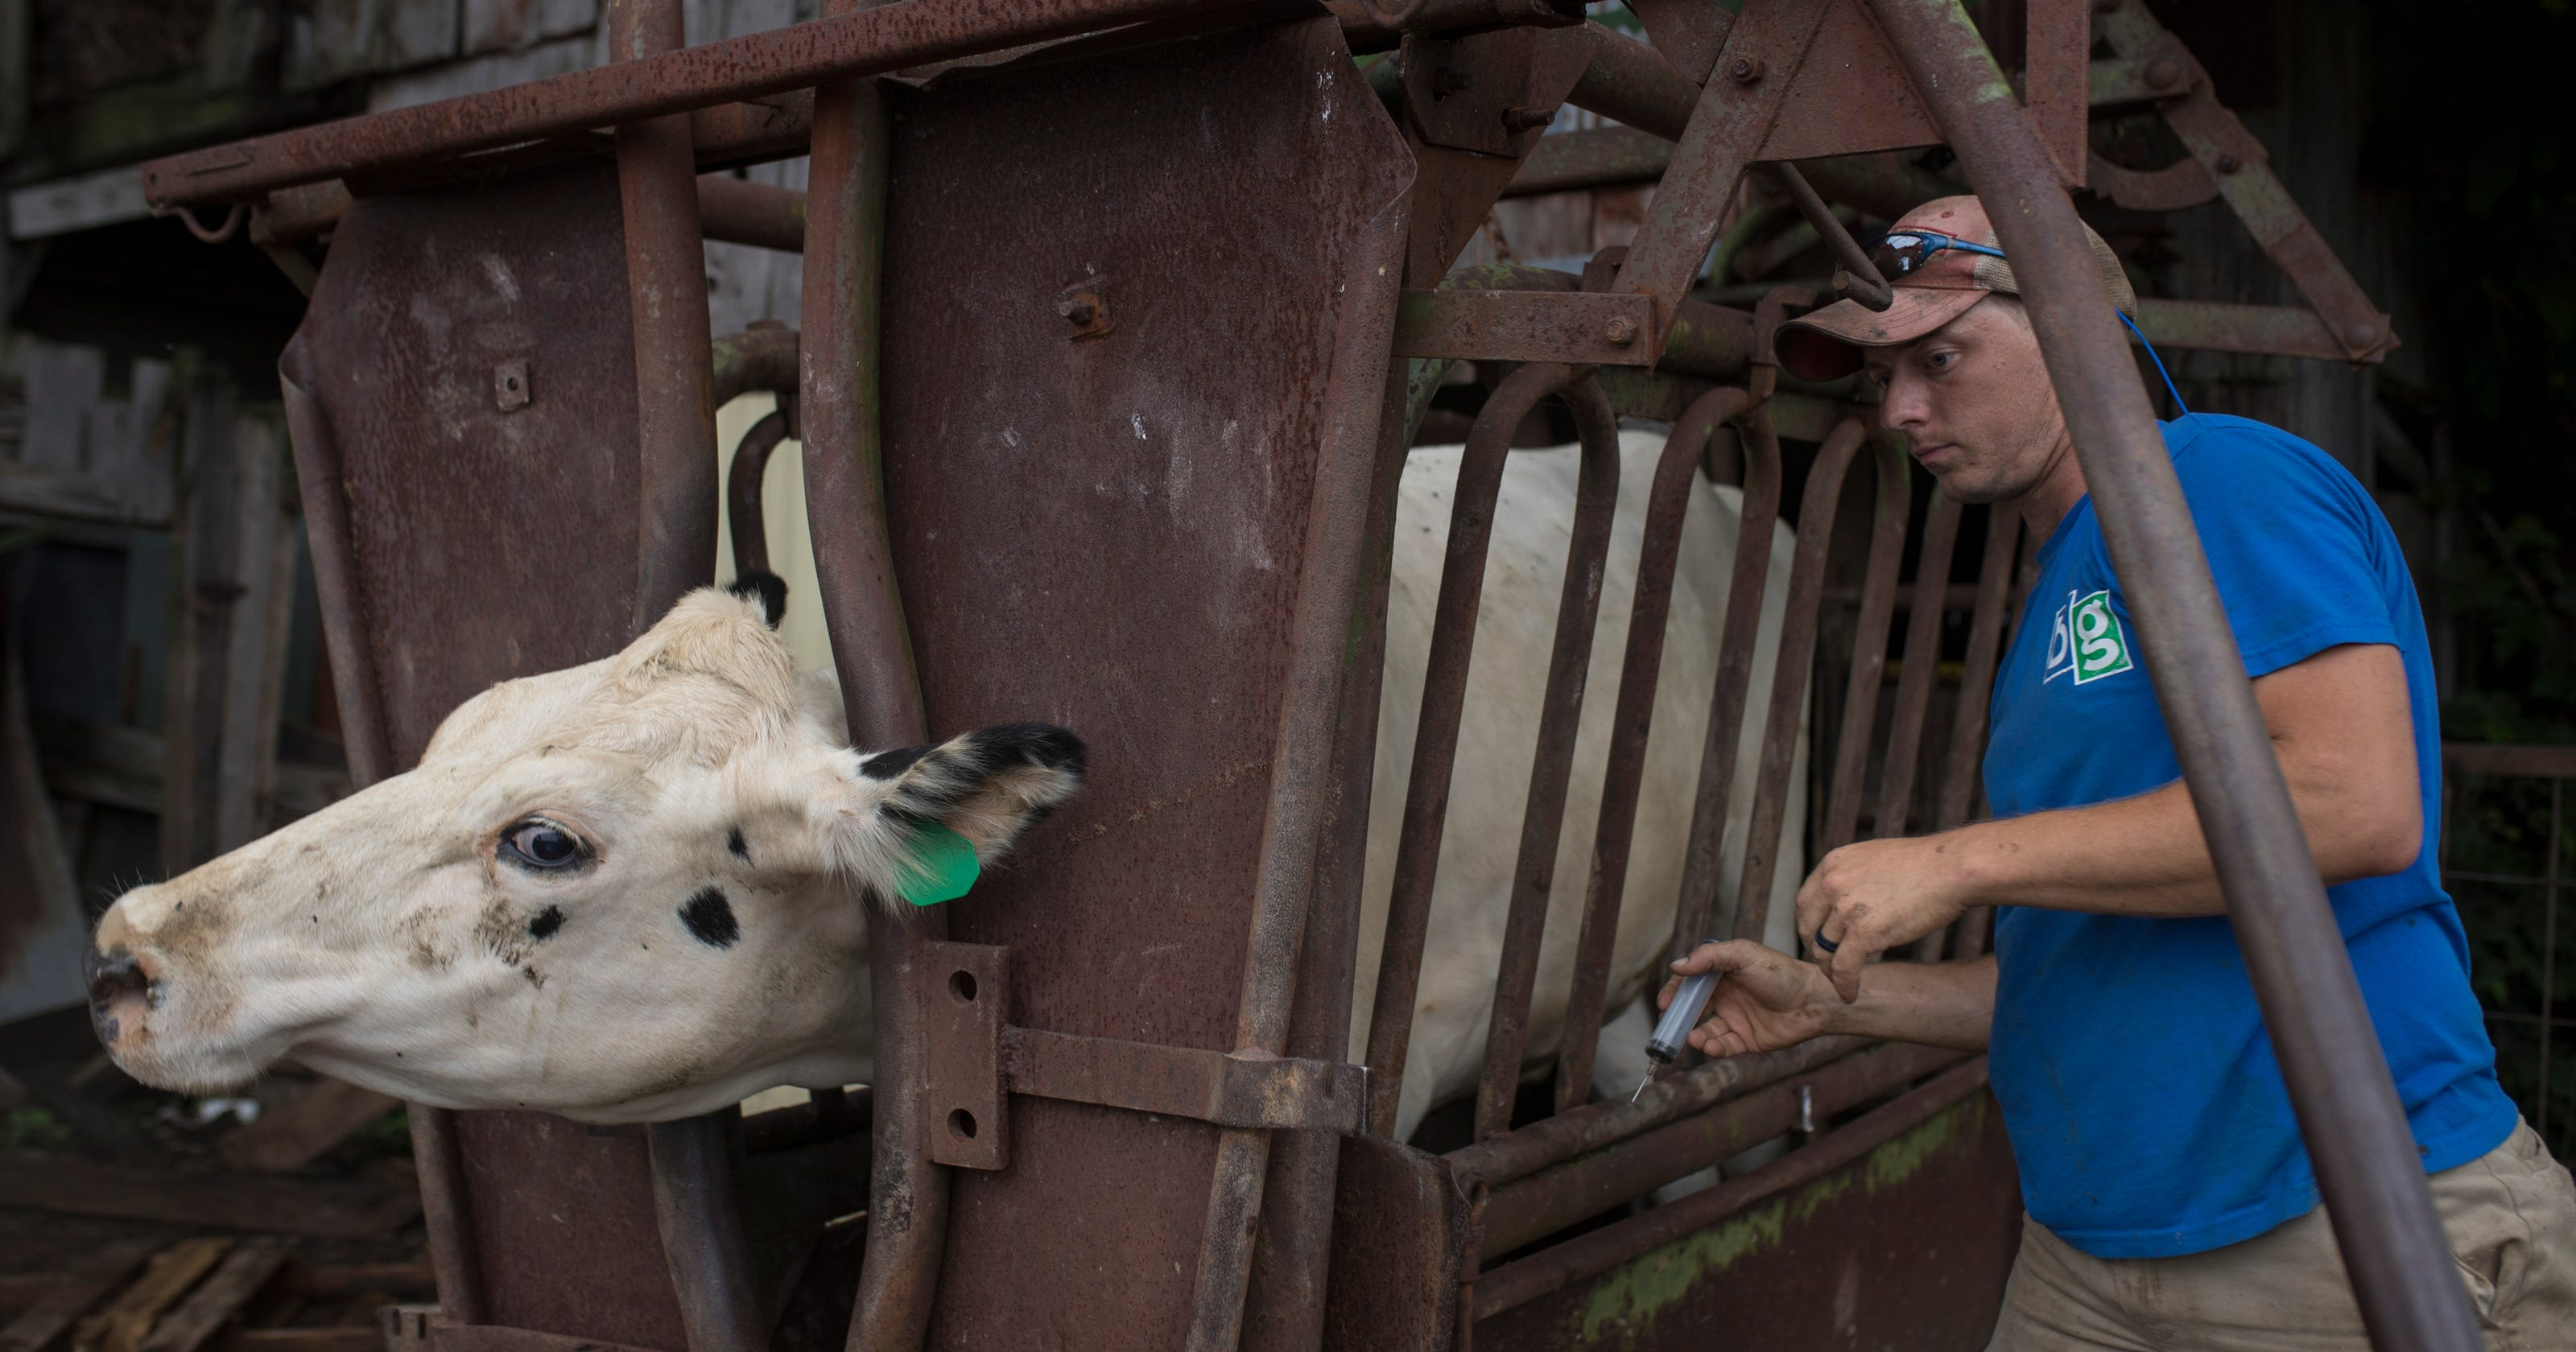 Kentucky dairy farmers get another chance to keep milking